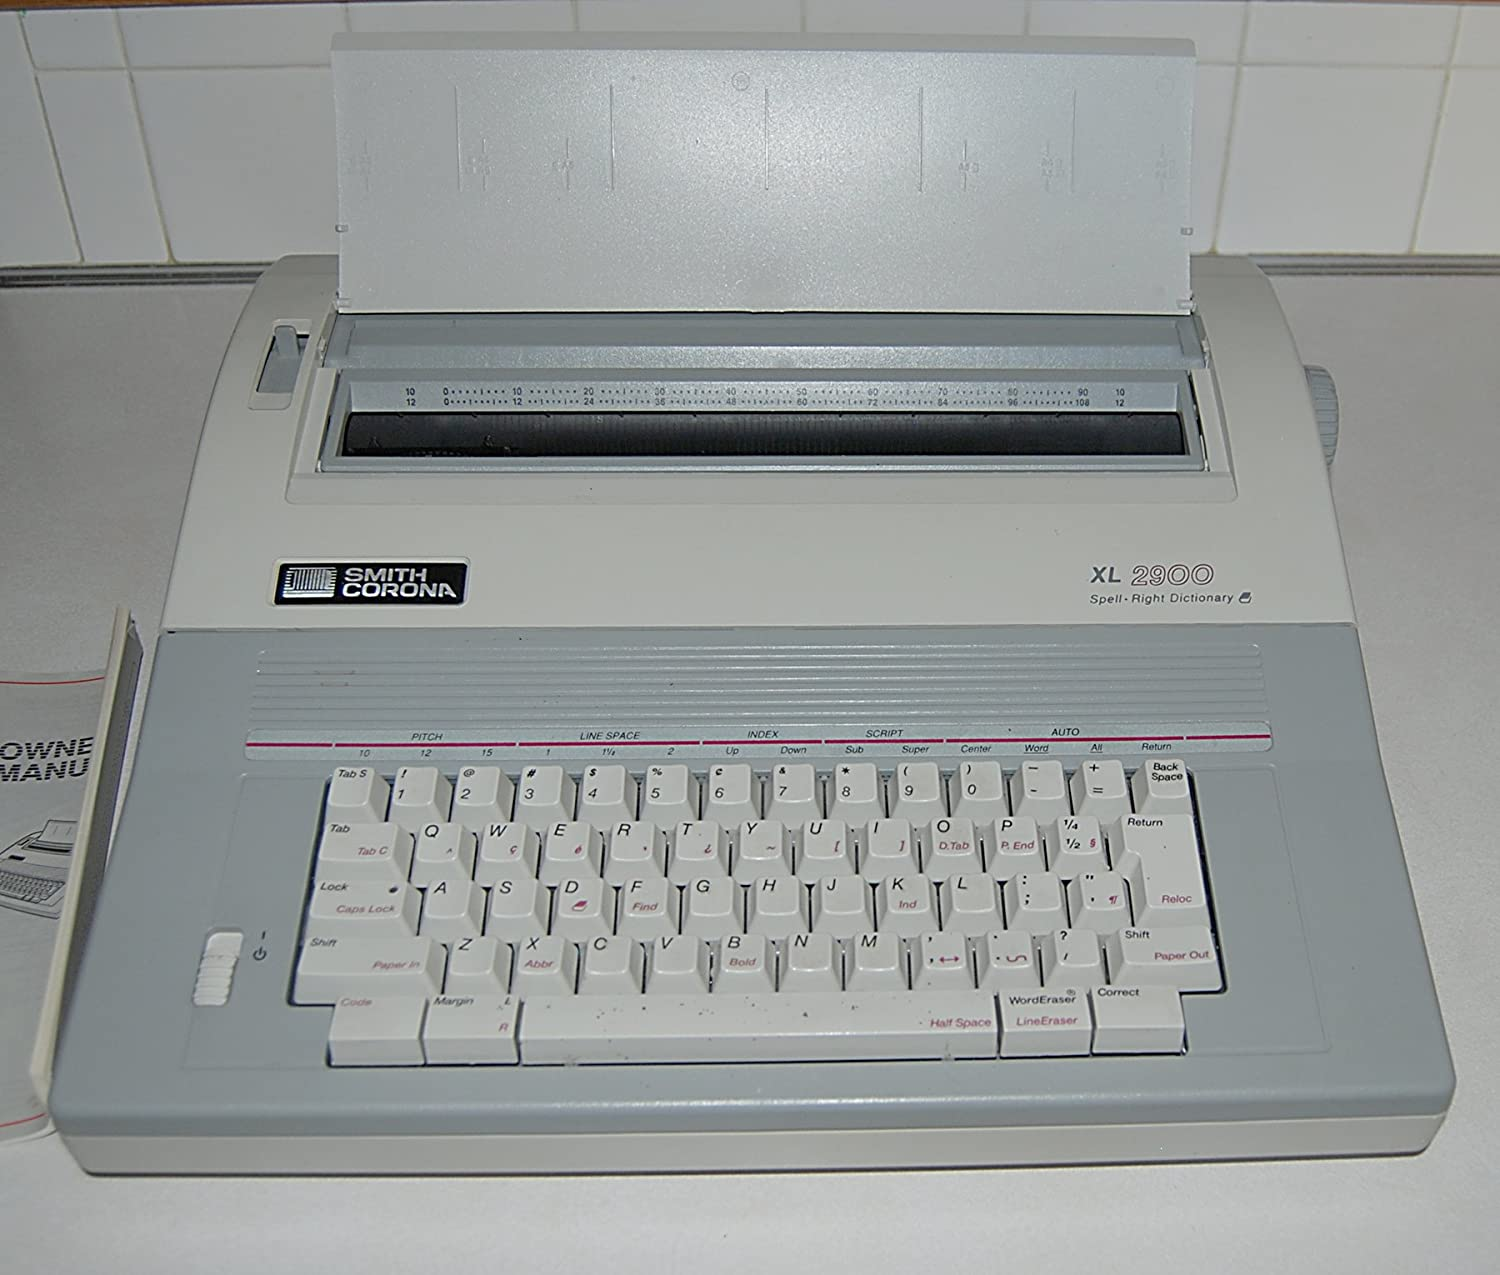 Amazon Com Smith Corona Electronic Typewriter W Spell Right Dictionary Word Correct Xl 2900 Model 5a 1 Electronics